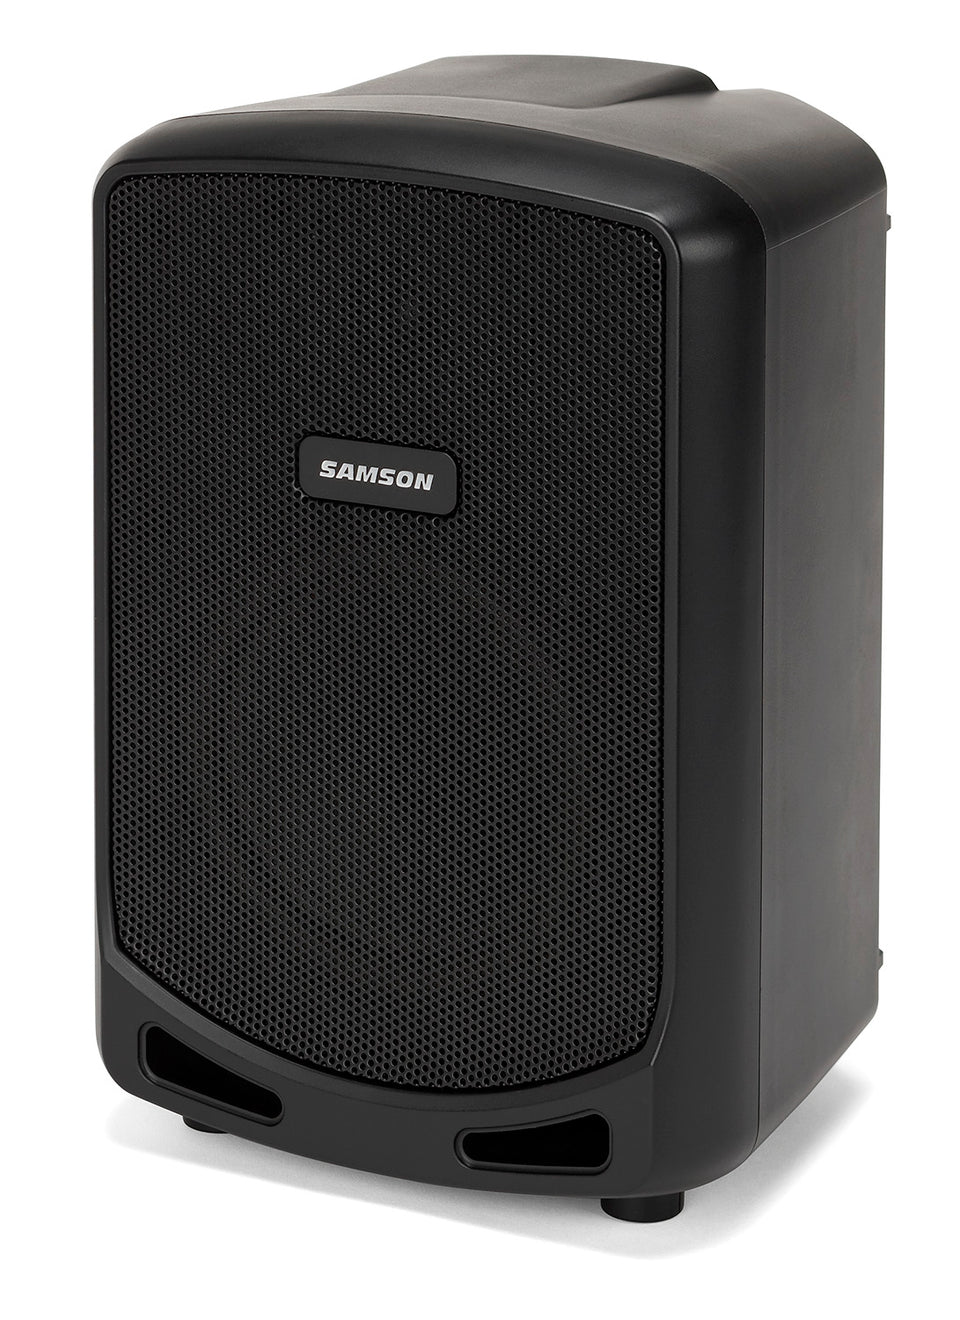 Samson Expedition Escape - Rechargeable Speaker System With Bluetooth